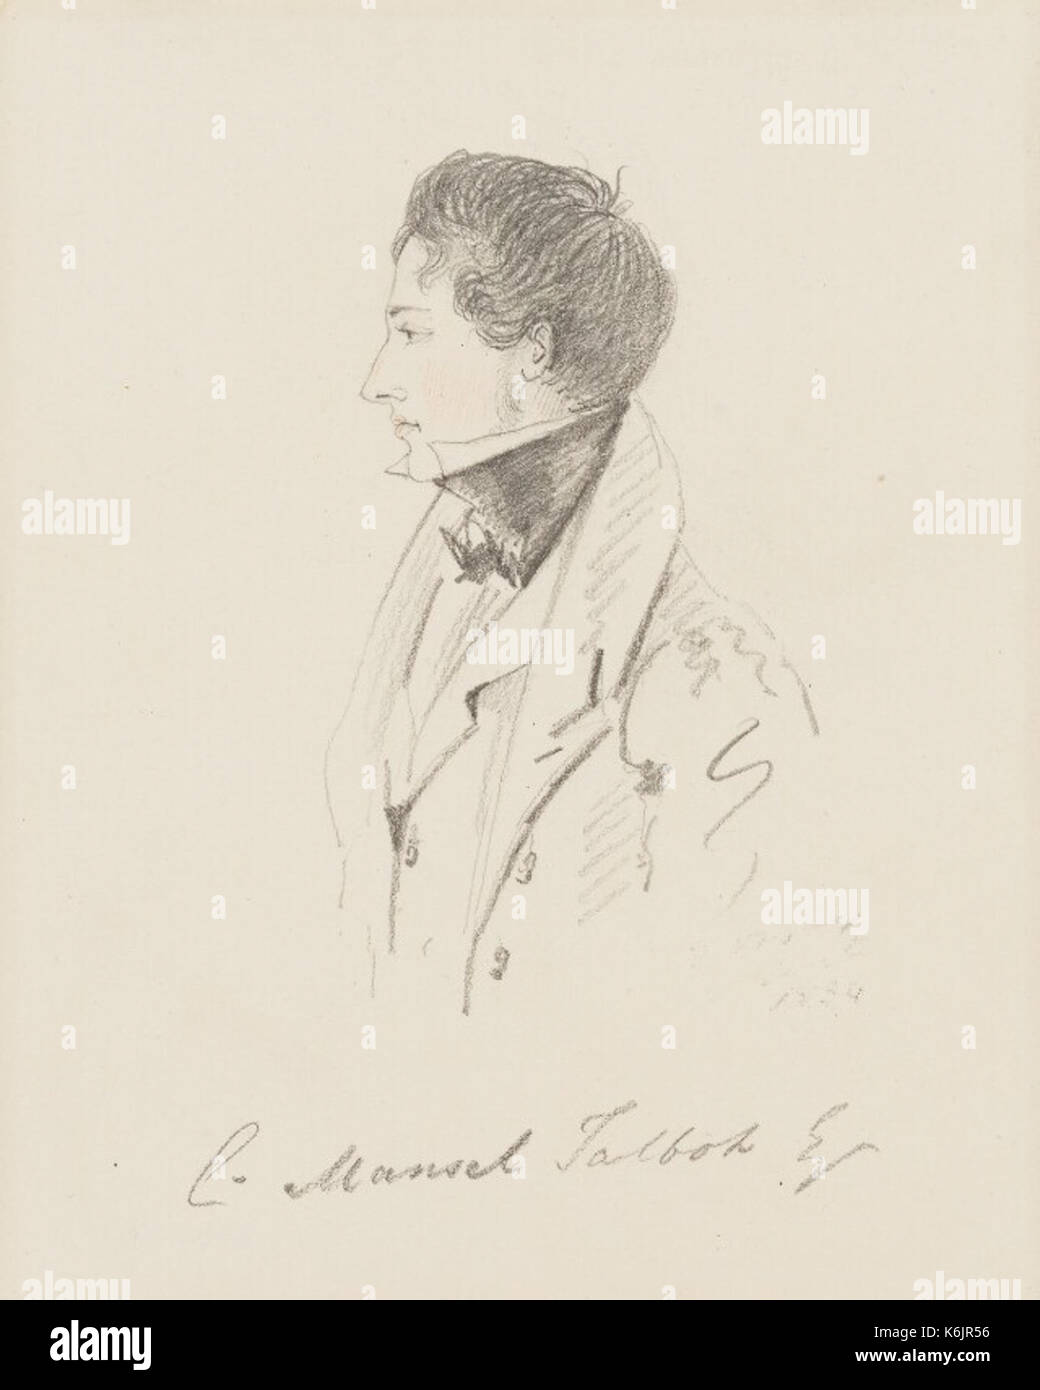 Christopher Rice Mansel Talbot by Alfred Count D'Orsay in 1834 - Stock Image